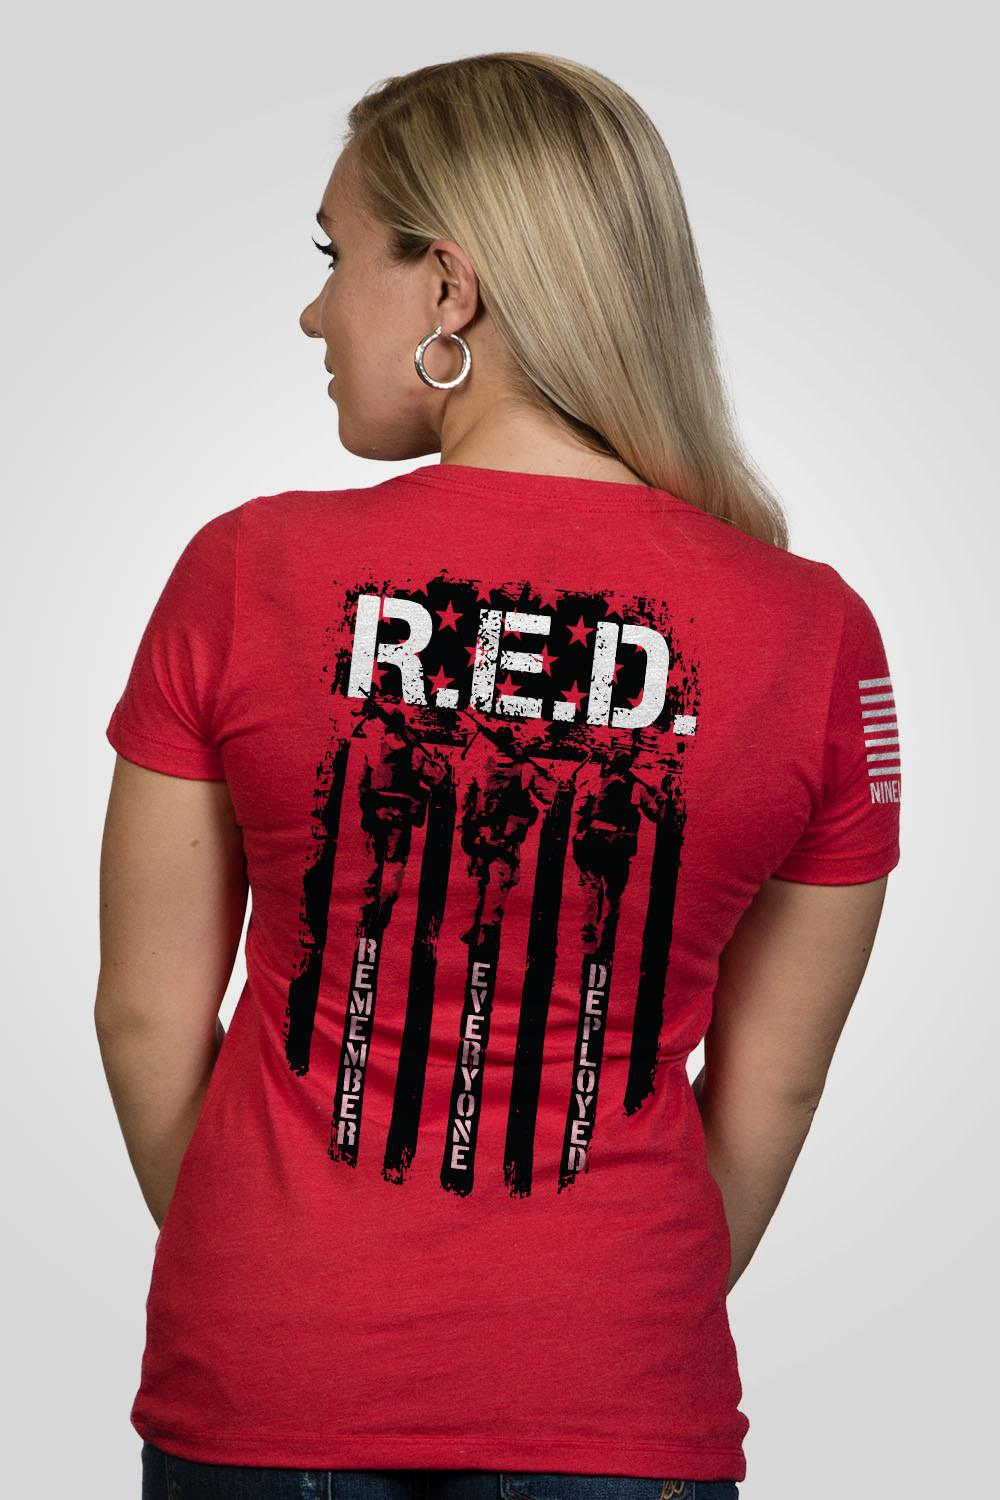 99f2b487 Womens Junior Fit T-Shirt - RED Remember Everyone Deployed